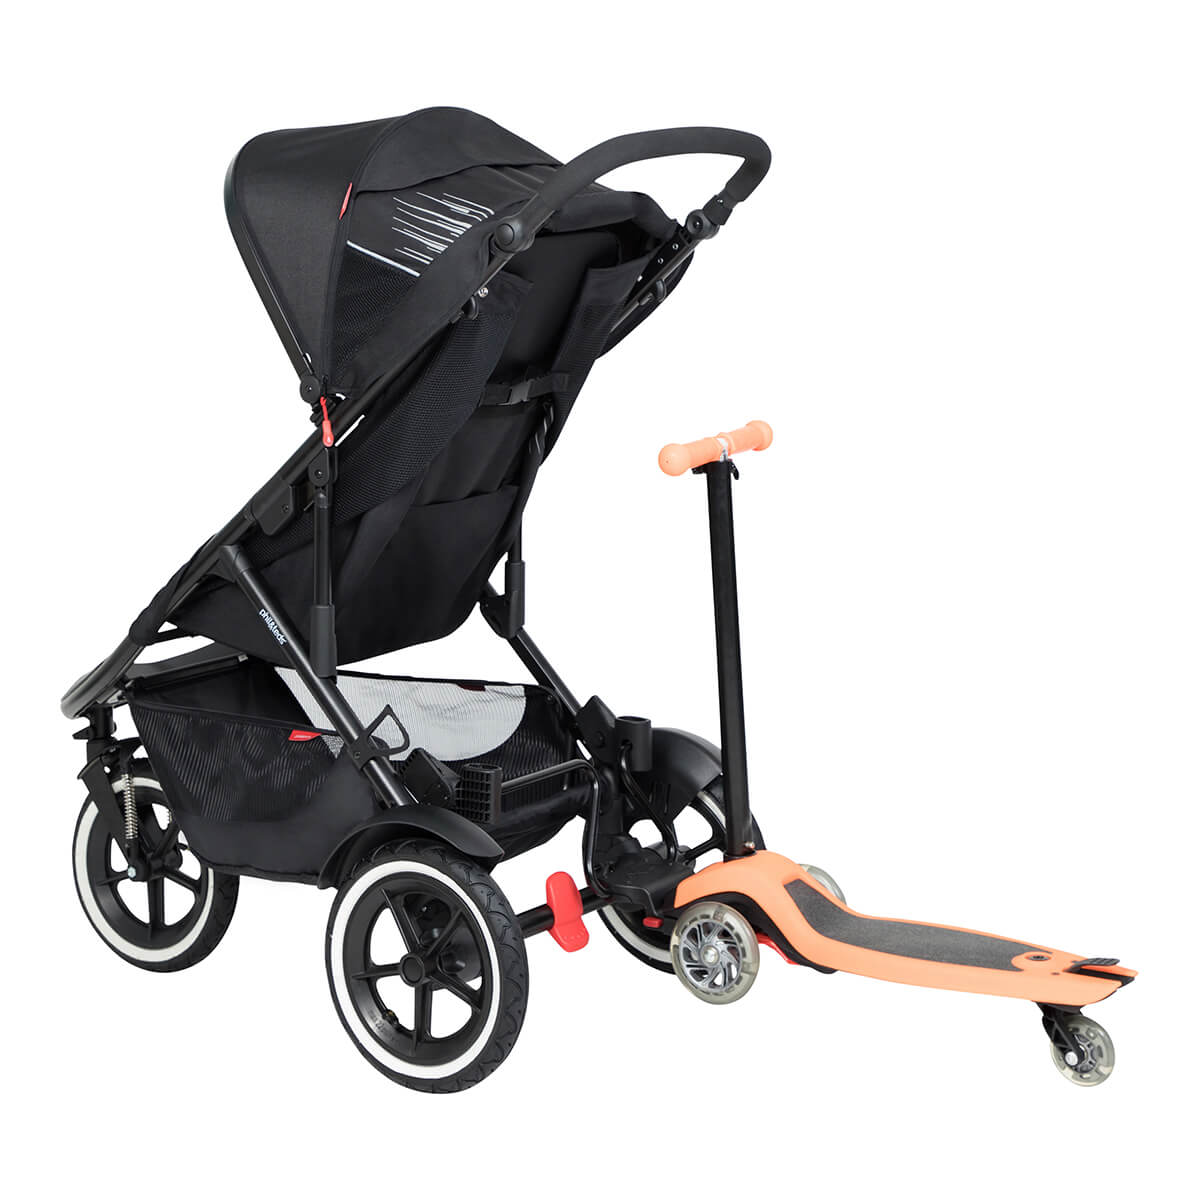 https://cdn.accentuate.io/4509867081825/19793940119722/philteds-sport-buggy-with-freerider-stroller-board-in-rear-v1626485284834.jpg?1200x1200